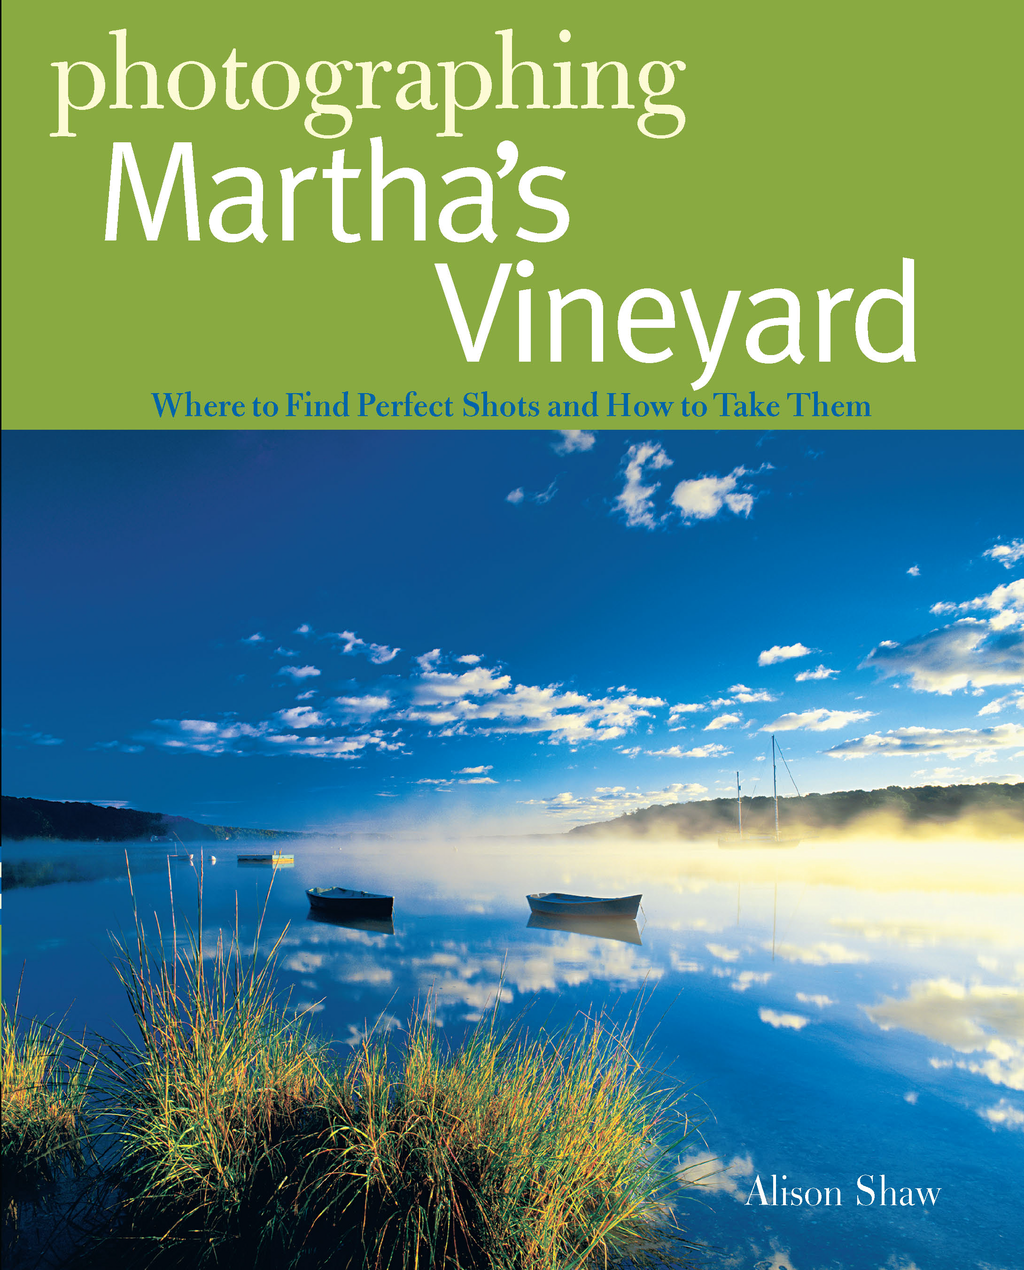 Photographing Martha's Vineyard: Where to Find Perfect Shots and How to Take Them (The Photographer's Guide) By: Alison Shaw